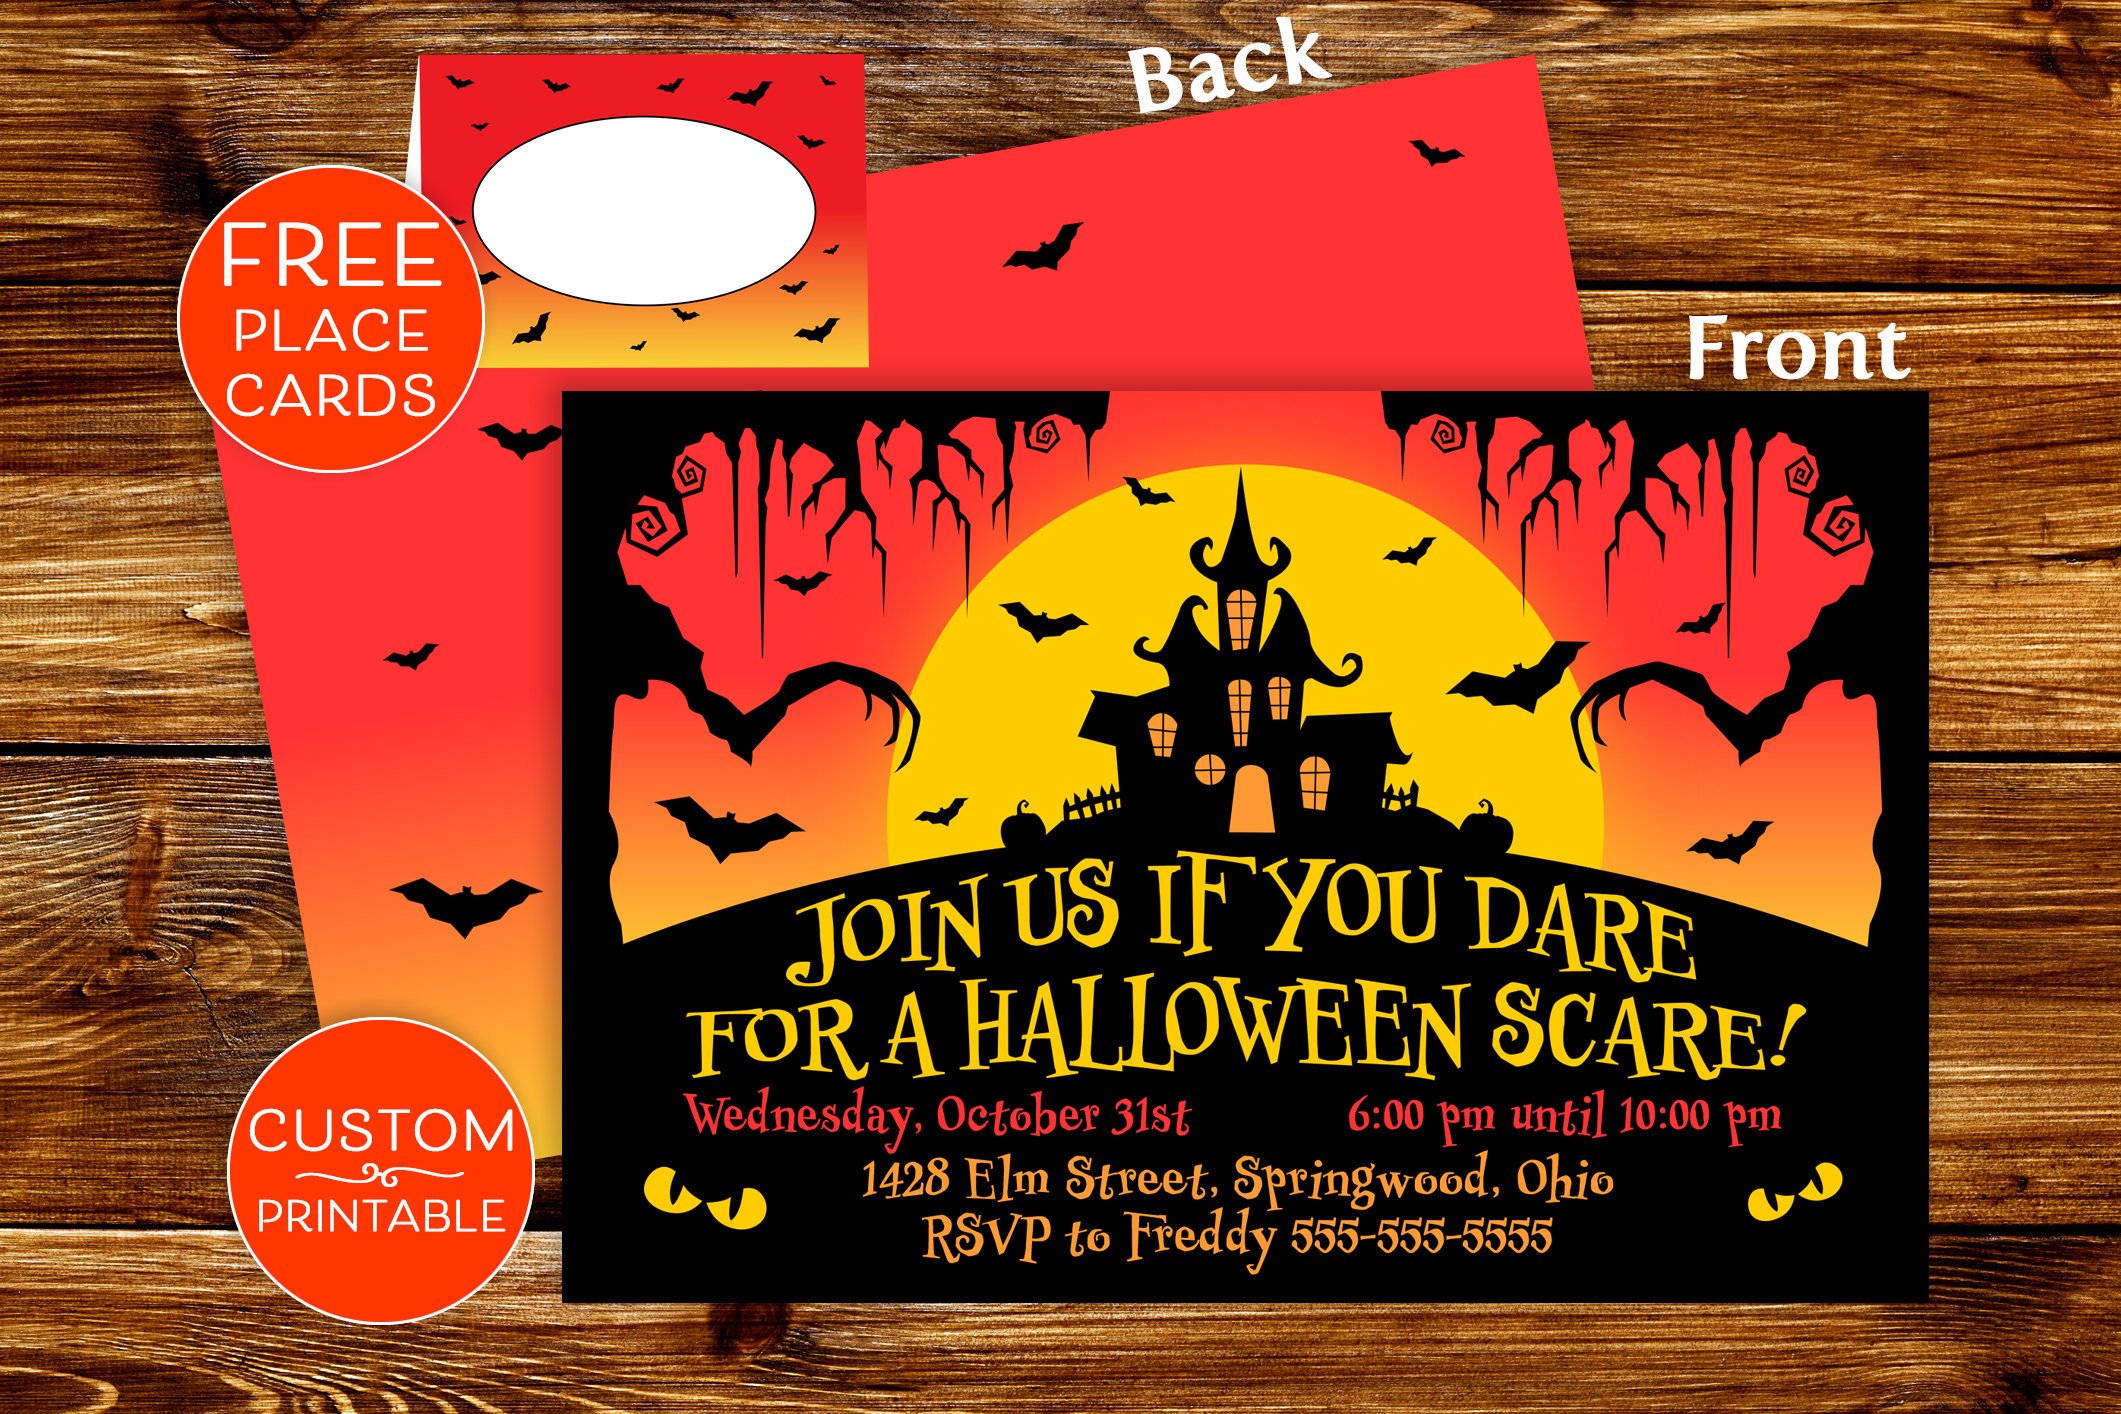 Printable Halloween Party Invitations Spooky Invite Custom | Etsy - Free Printable Halloween Place Cards